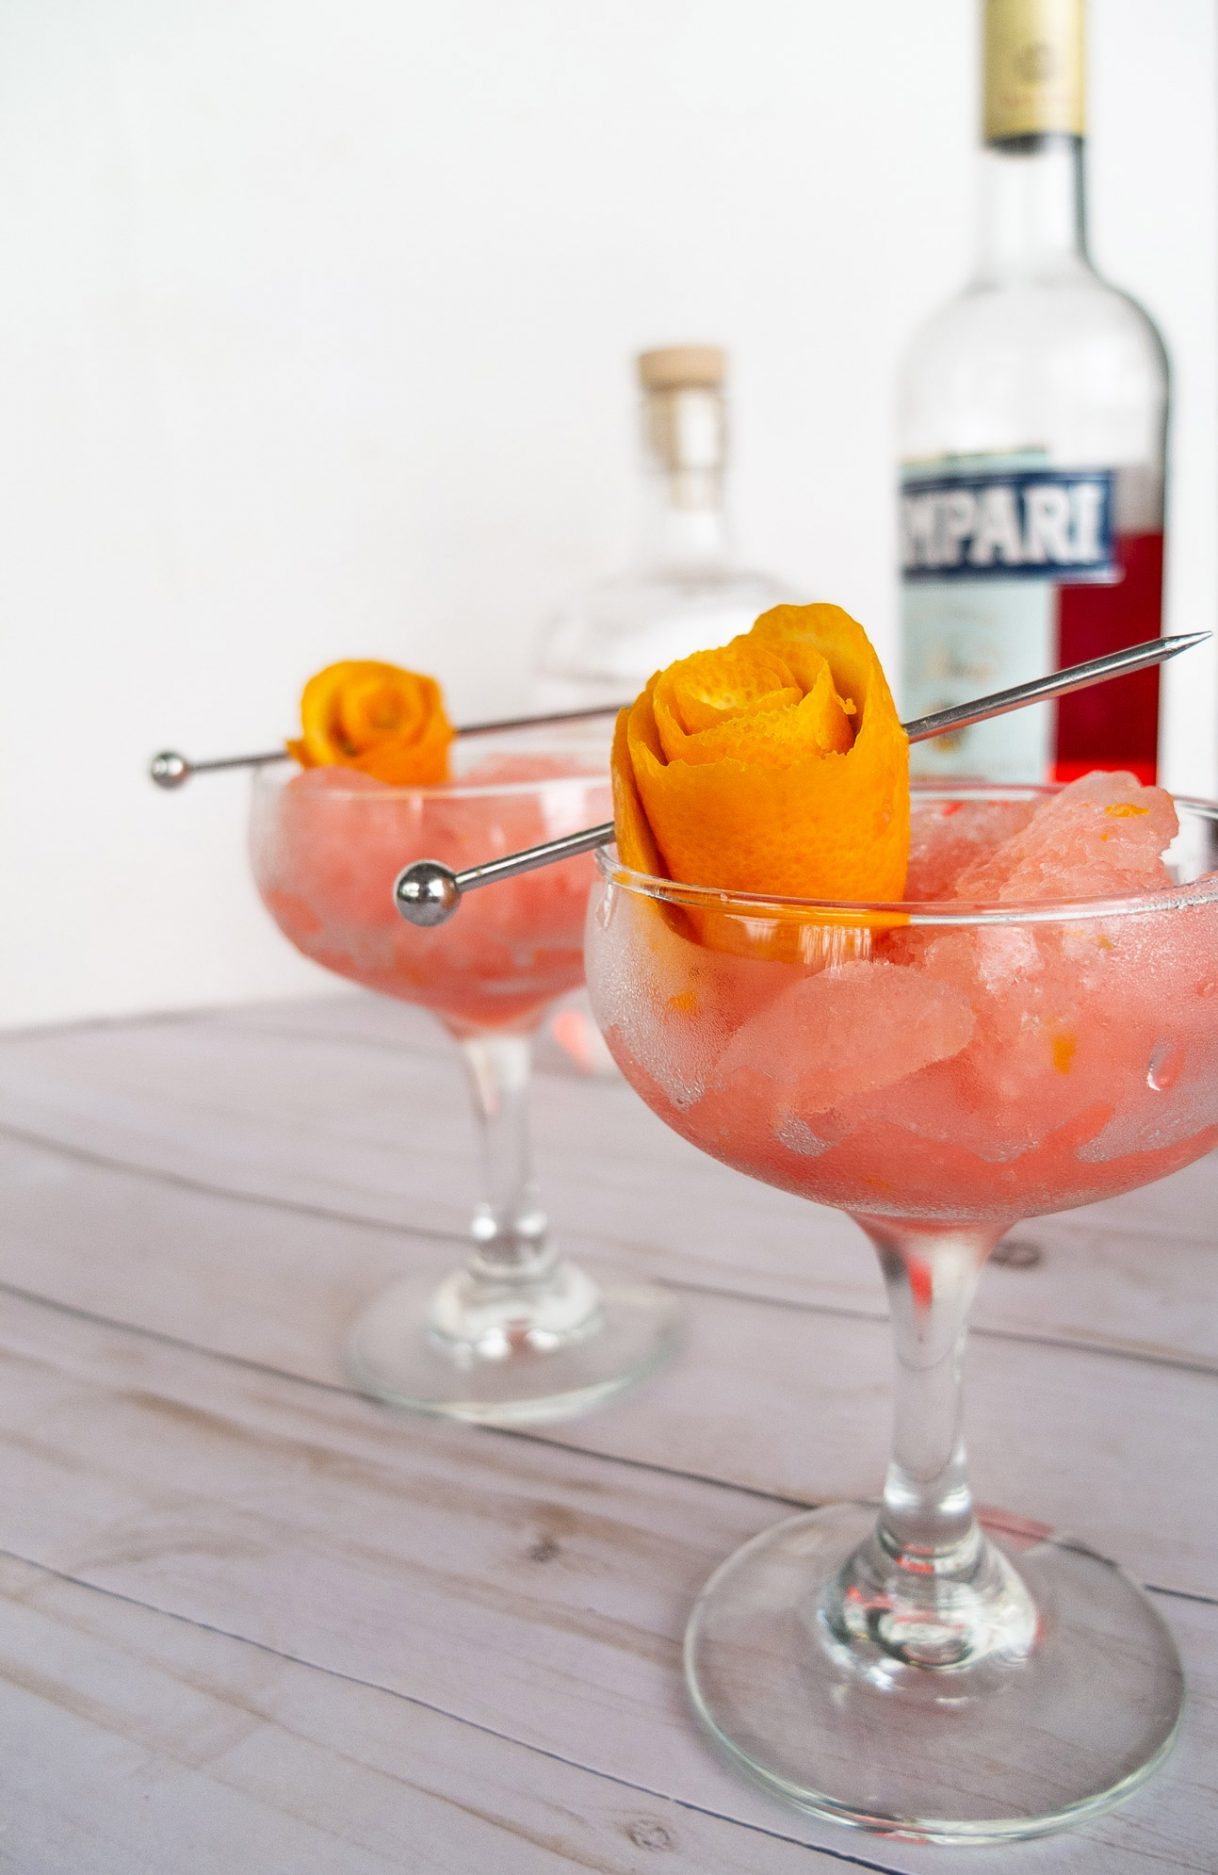 Negroni Granita! Just in time for #negorniweek, this frozen Negroni is the perfect summer cocktail. Think adult slushy meets Italian cocktail. #cocktail #cocktailrecipe #gin #aperitif #campari #granita #summerdrink